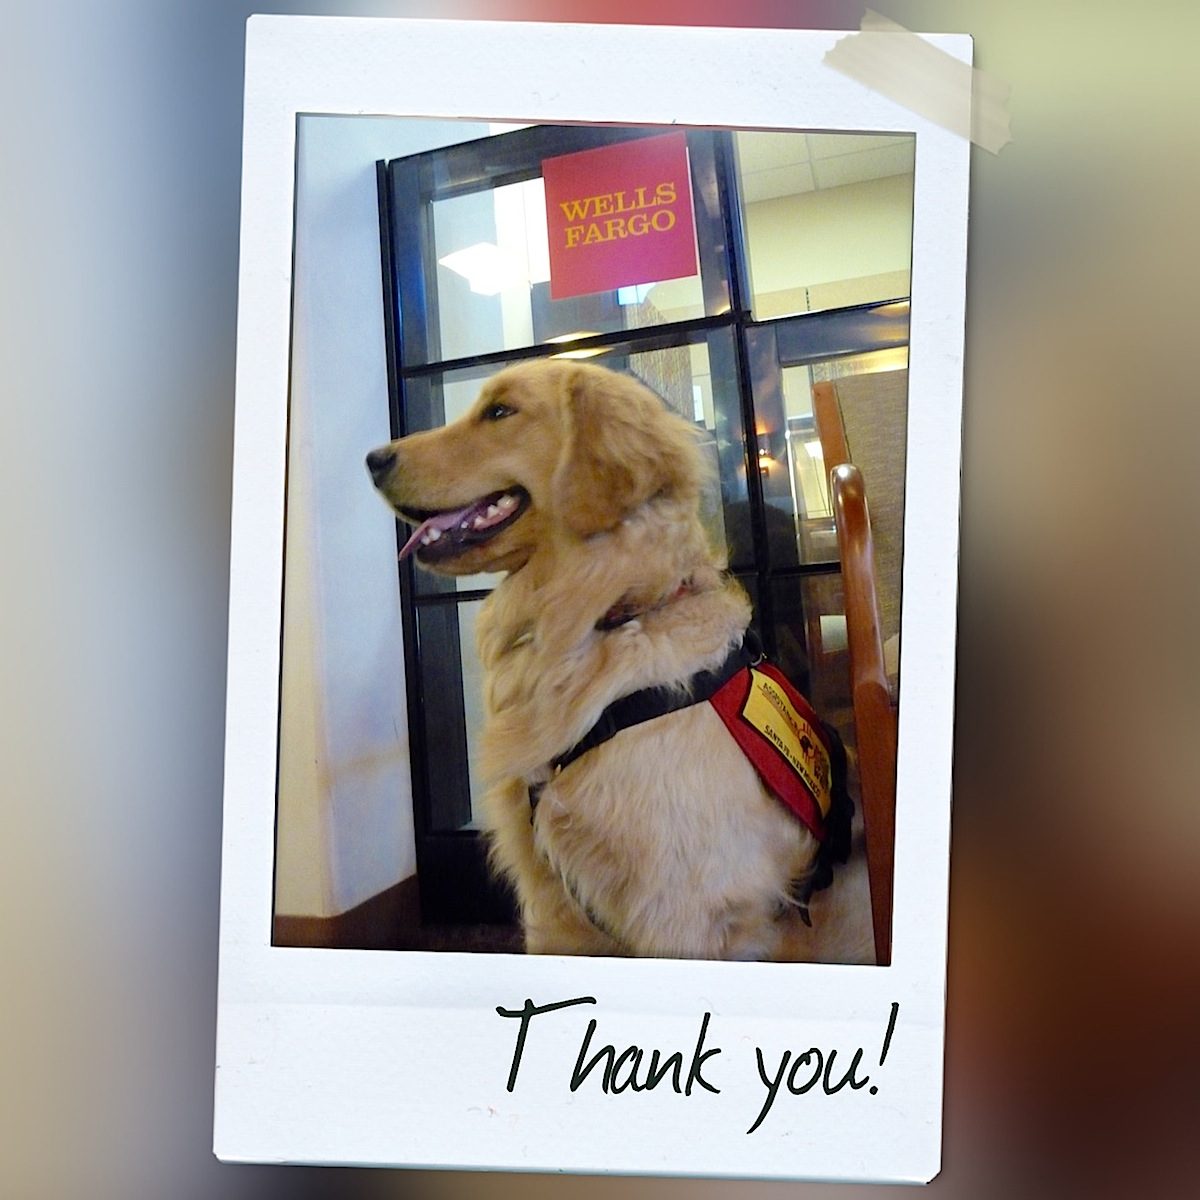 Warrior Canine Connection™ and Wells Fargo Bank: Gratitude to Our Grantors